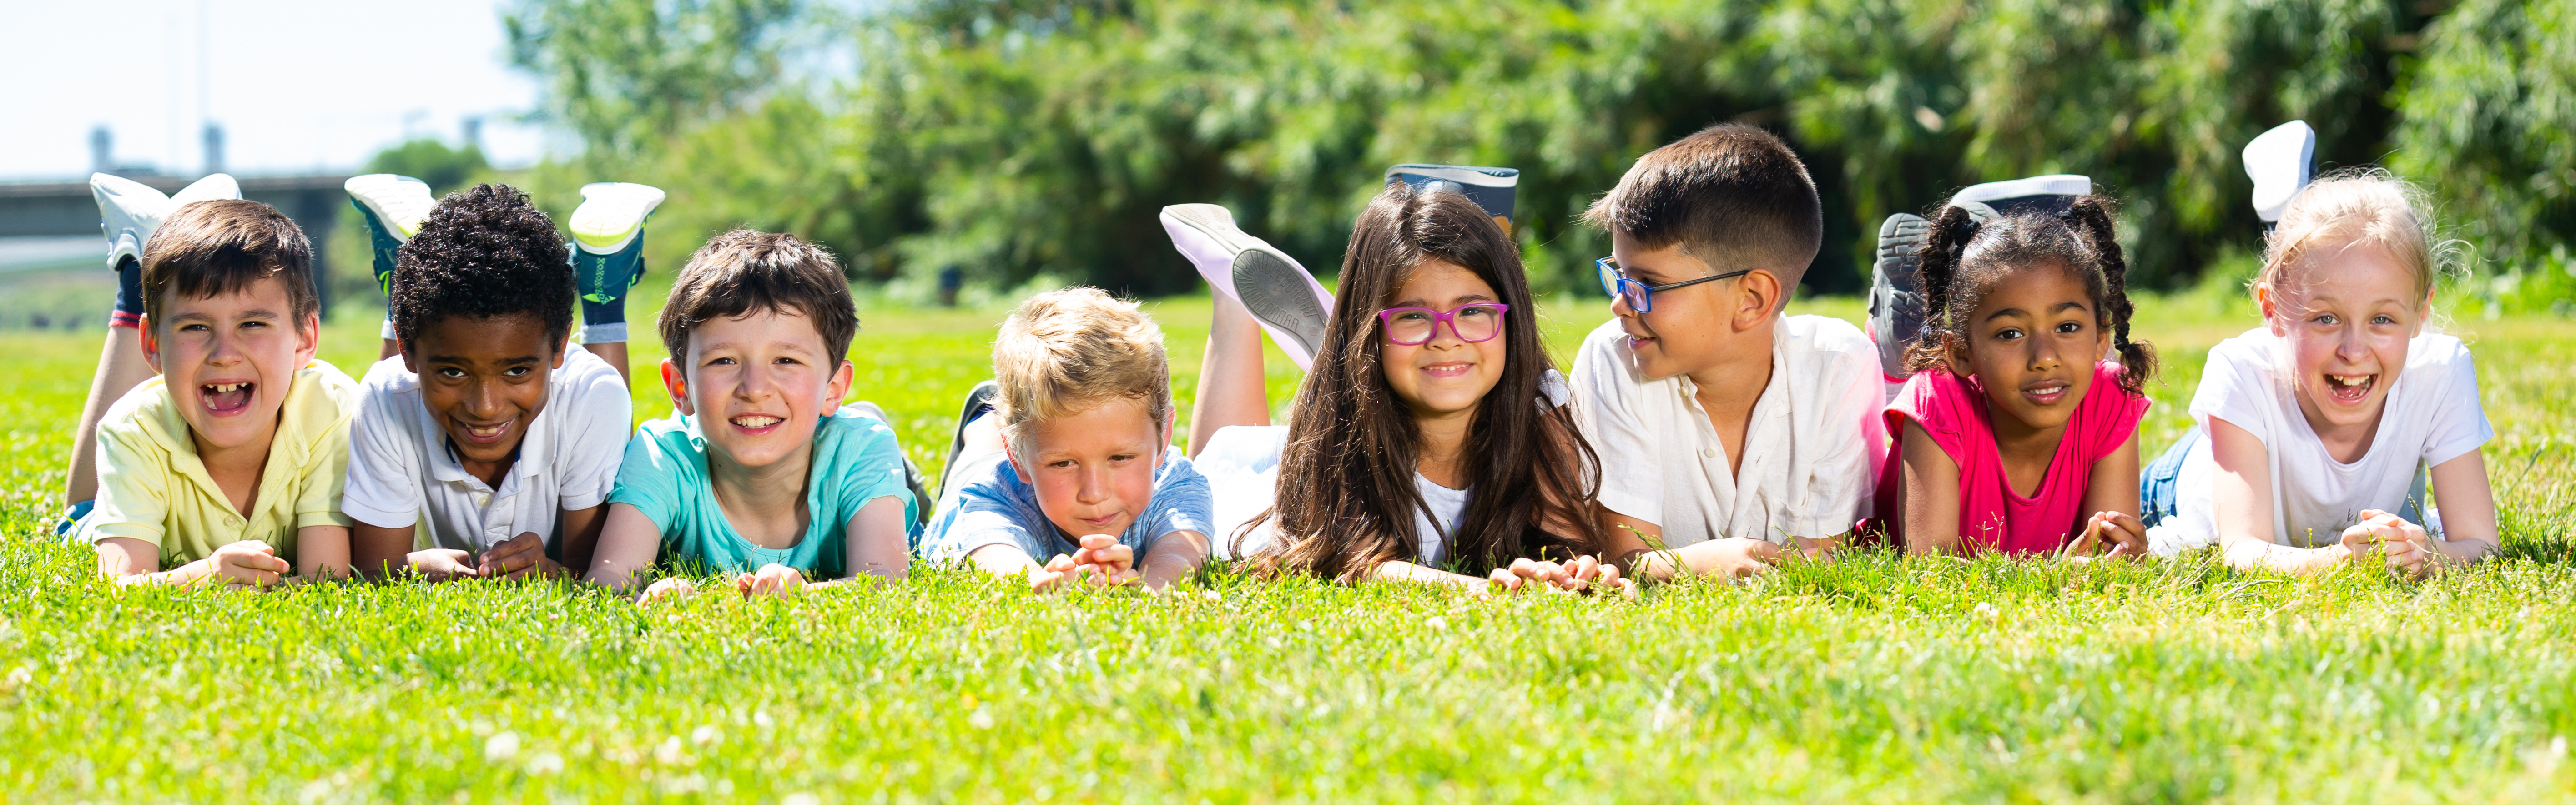 Kids laying in grass